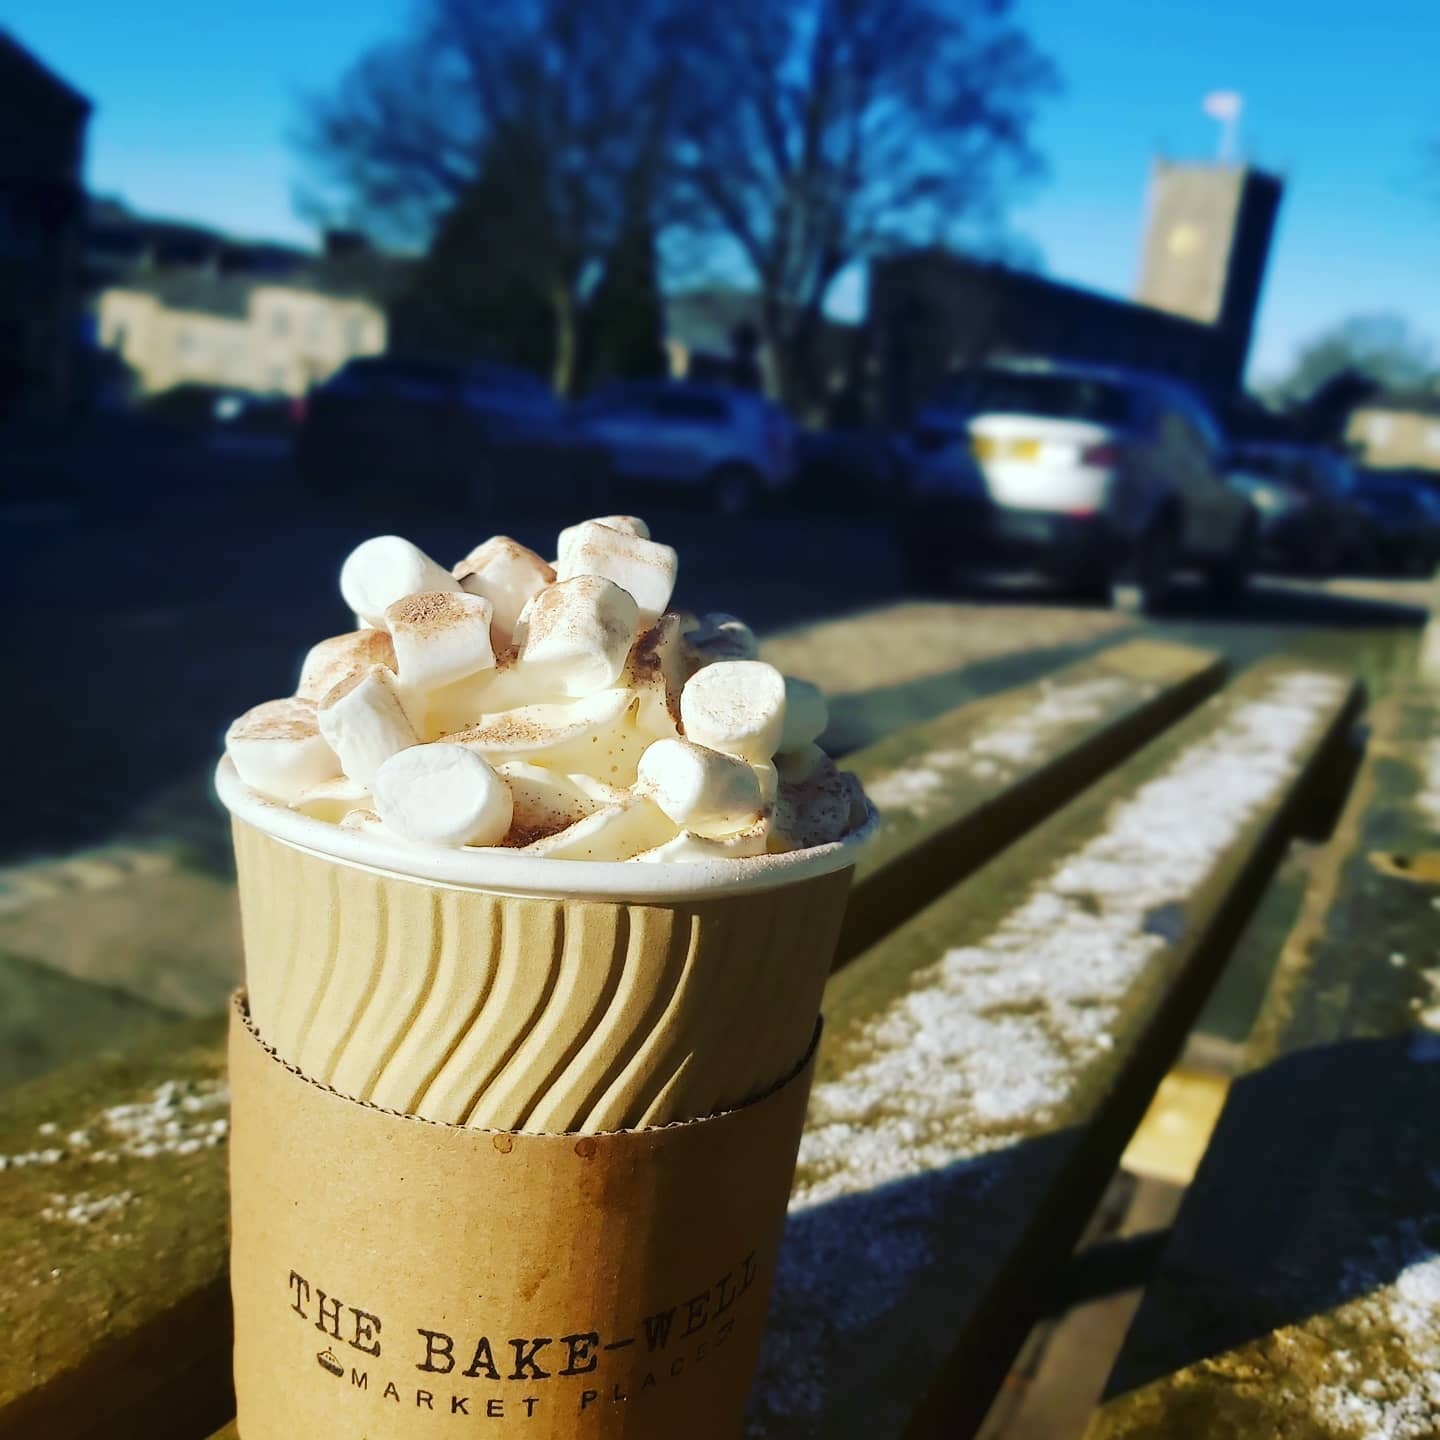 Hot Chocolate with a view